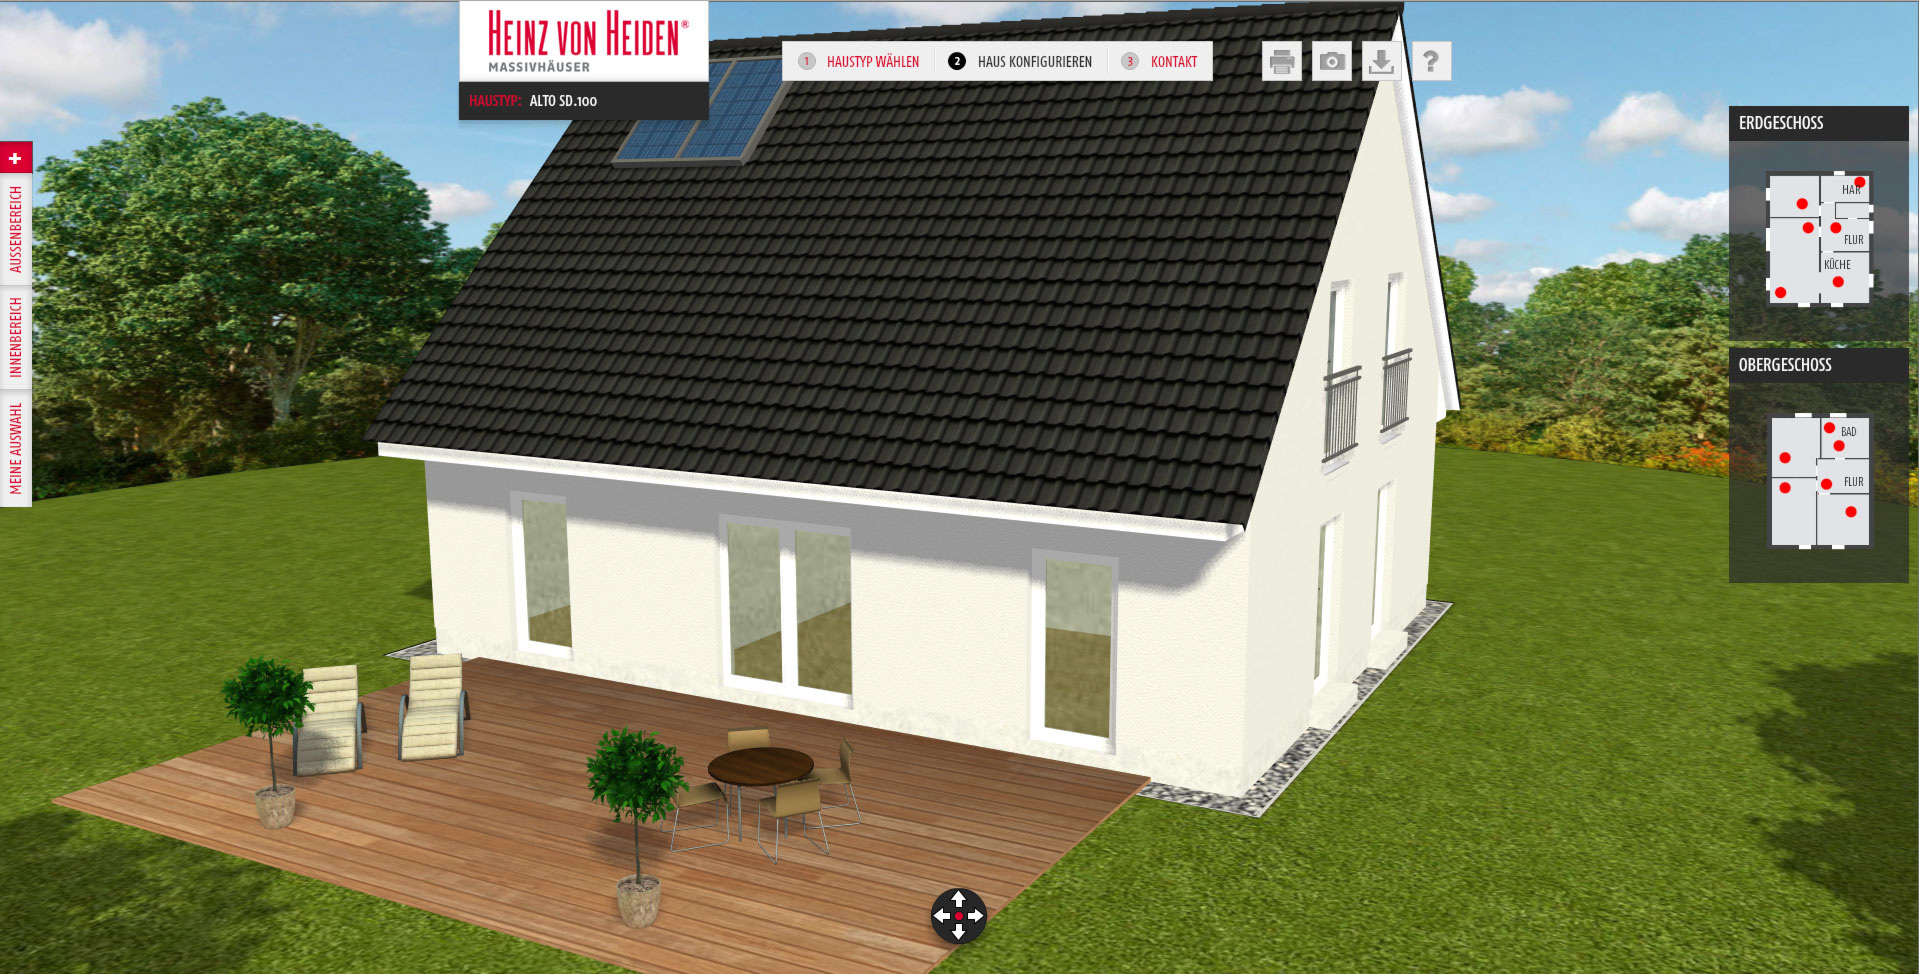 Heinz von heiden house configurator videometry for House configurator